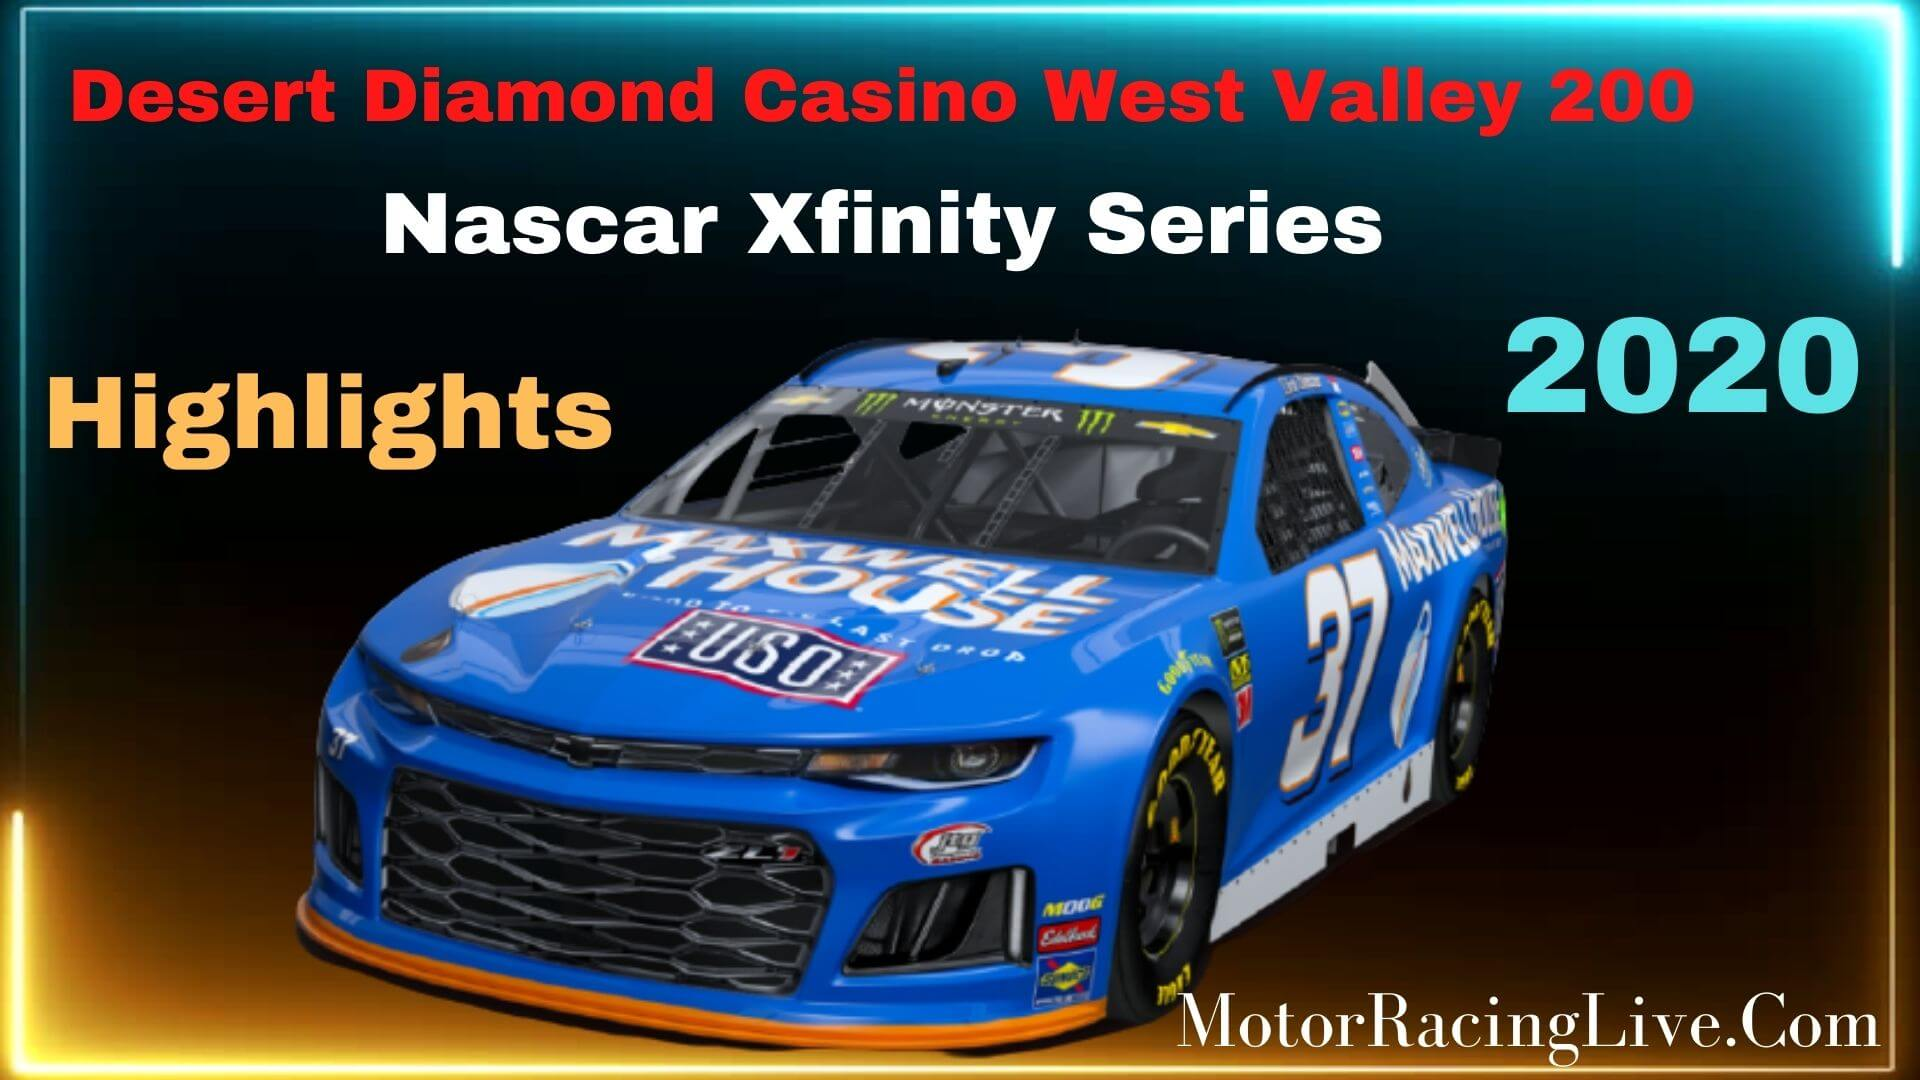 Desert Diamond Casino West Valley 200 Highlights NXS 2020